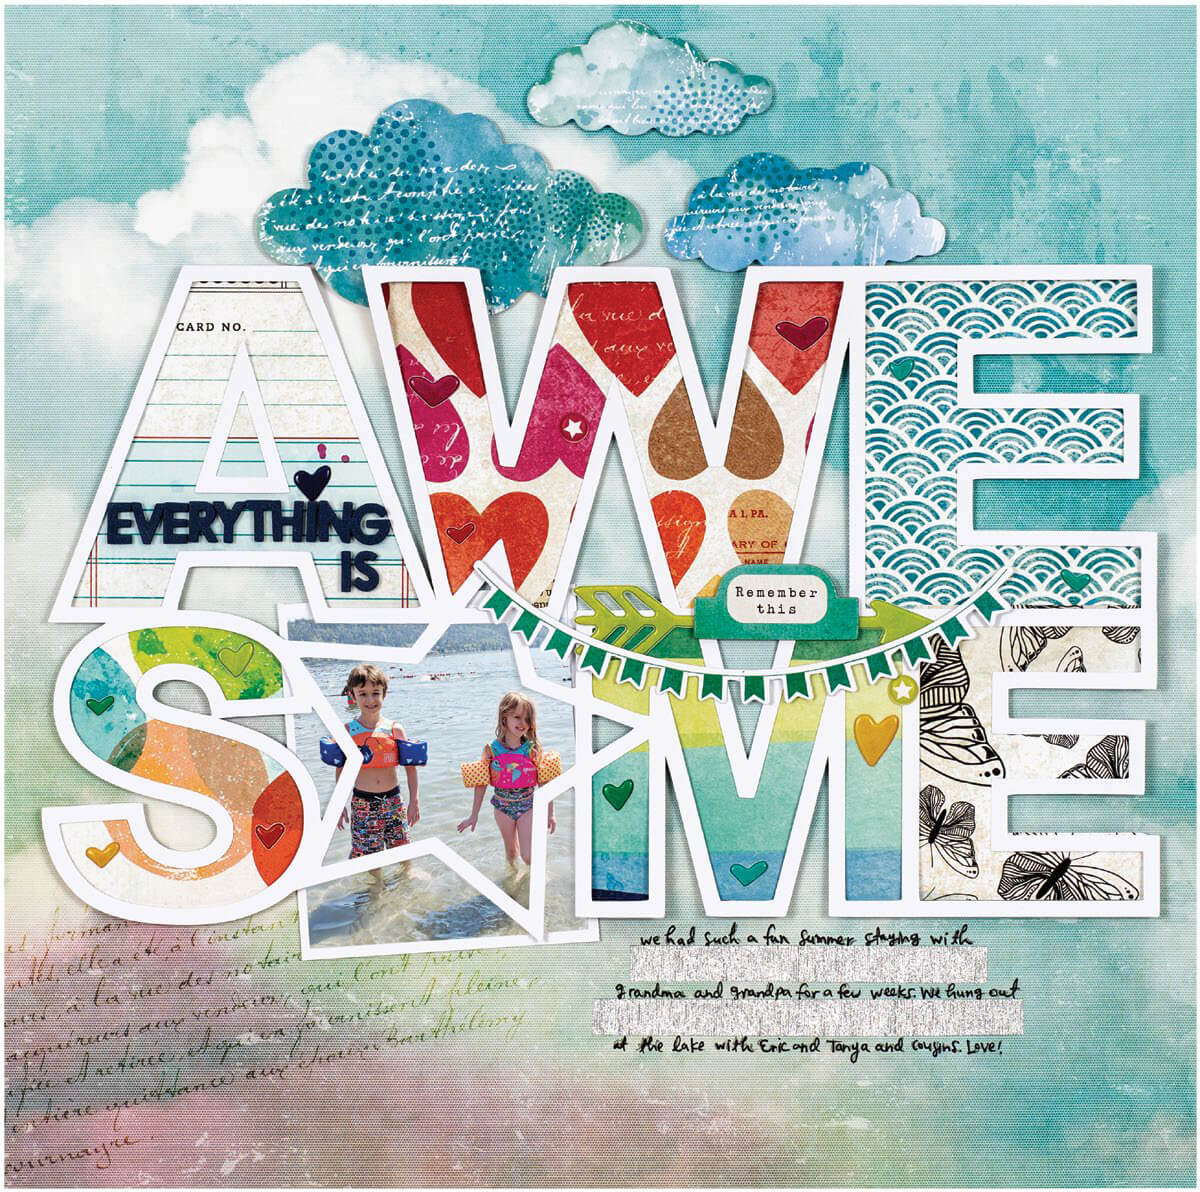 Scrapbook & Cards Today - Summer 2019 - Everything Is Awesome layout by Paige Evans